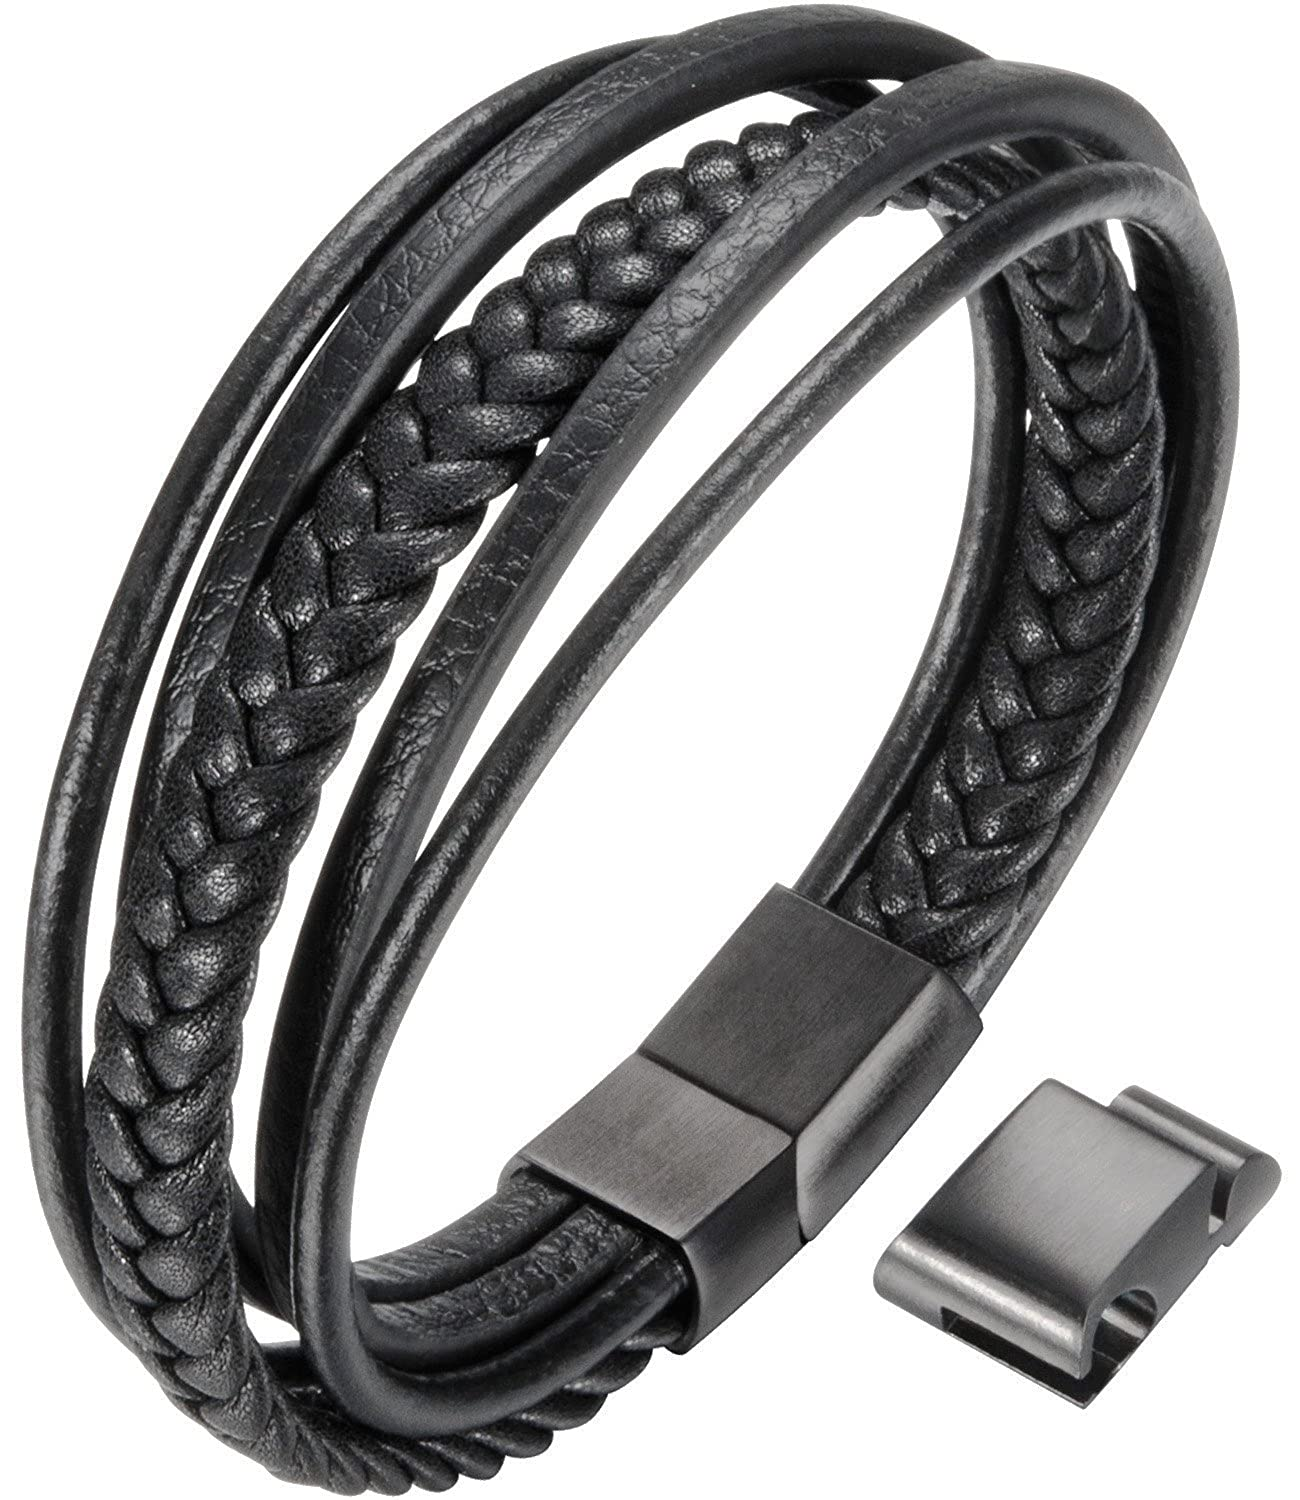 OSTAN Mens Bracelet Men`s Braided Leather Bracelet Multilayer Fashion Wrist Cuff Bangle Black - OTSUS297